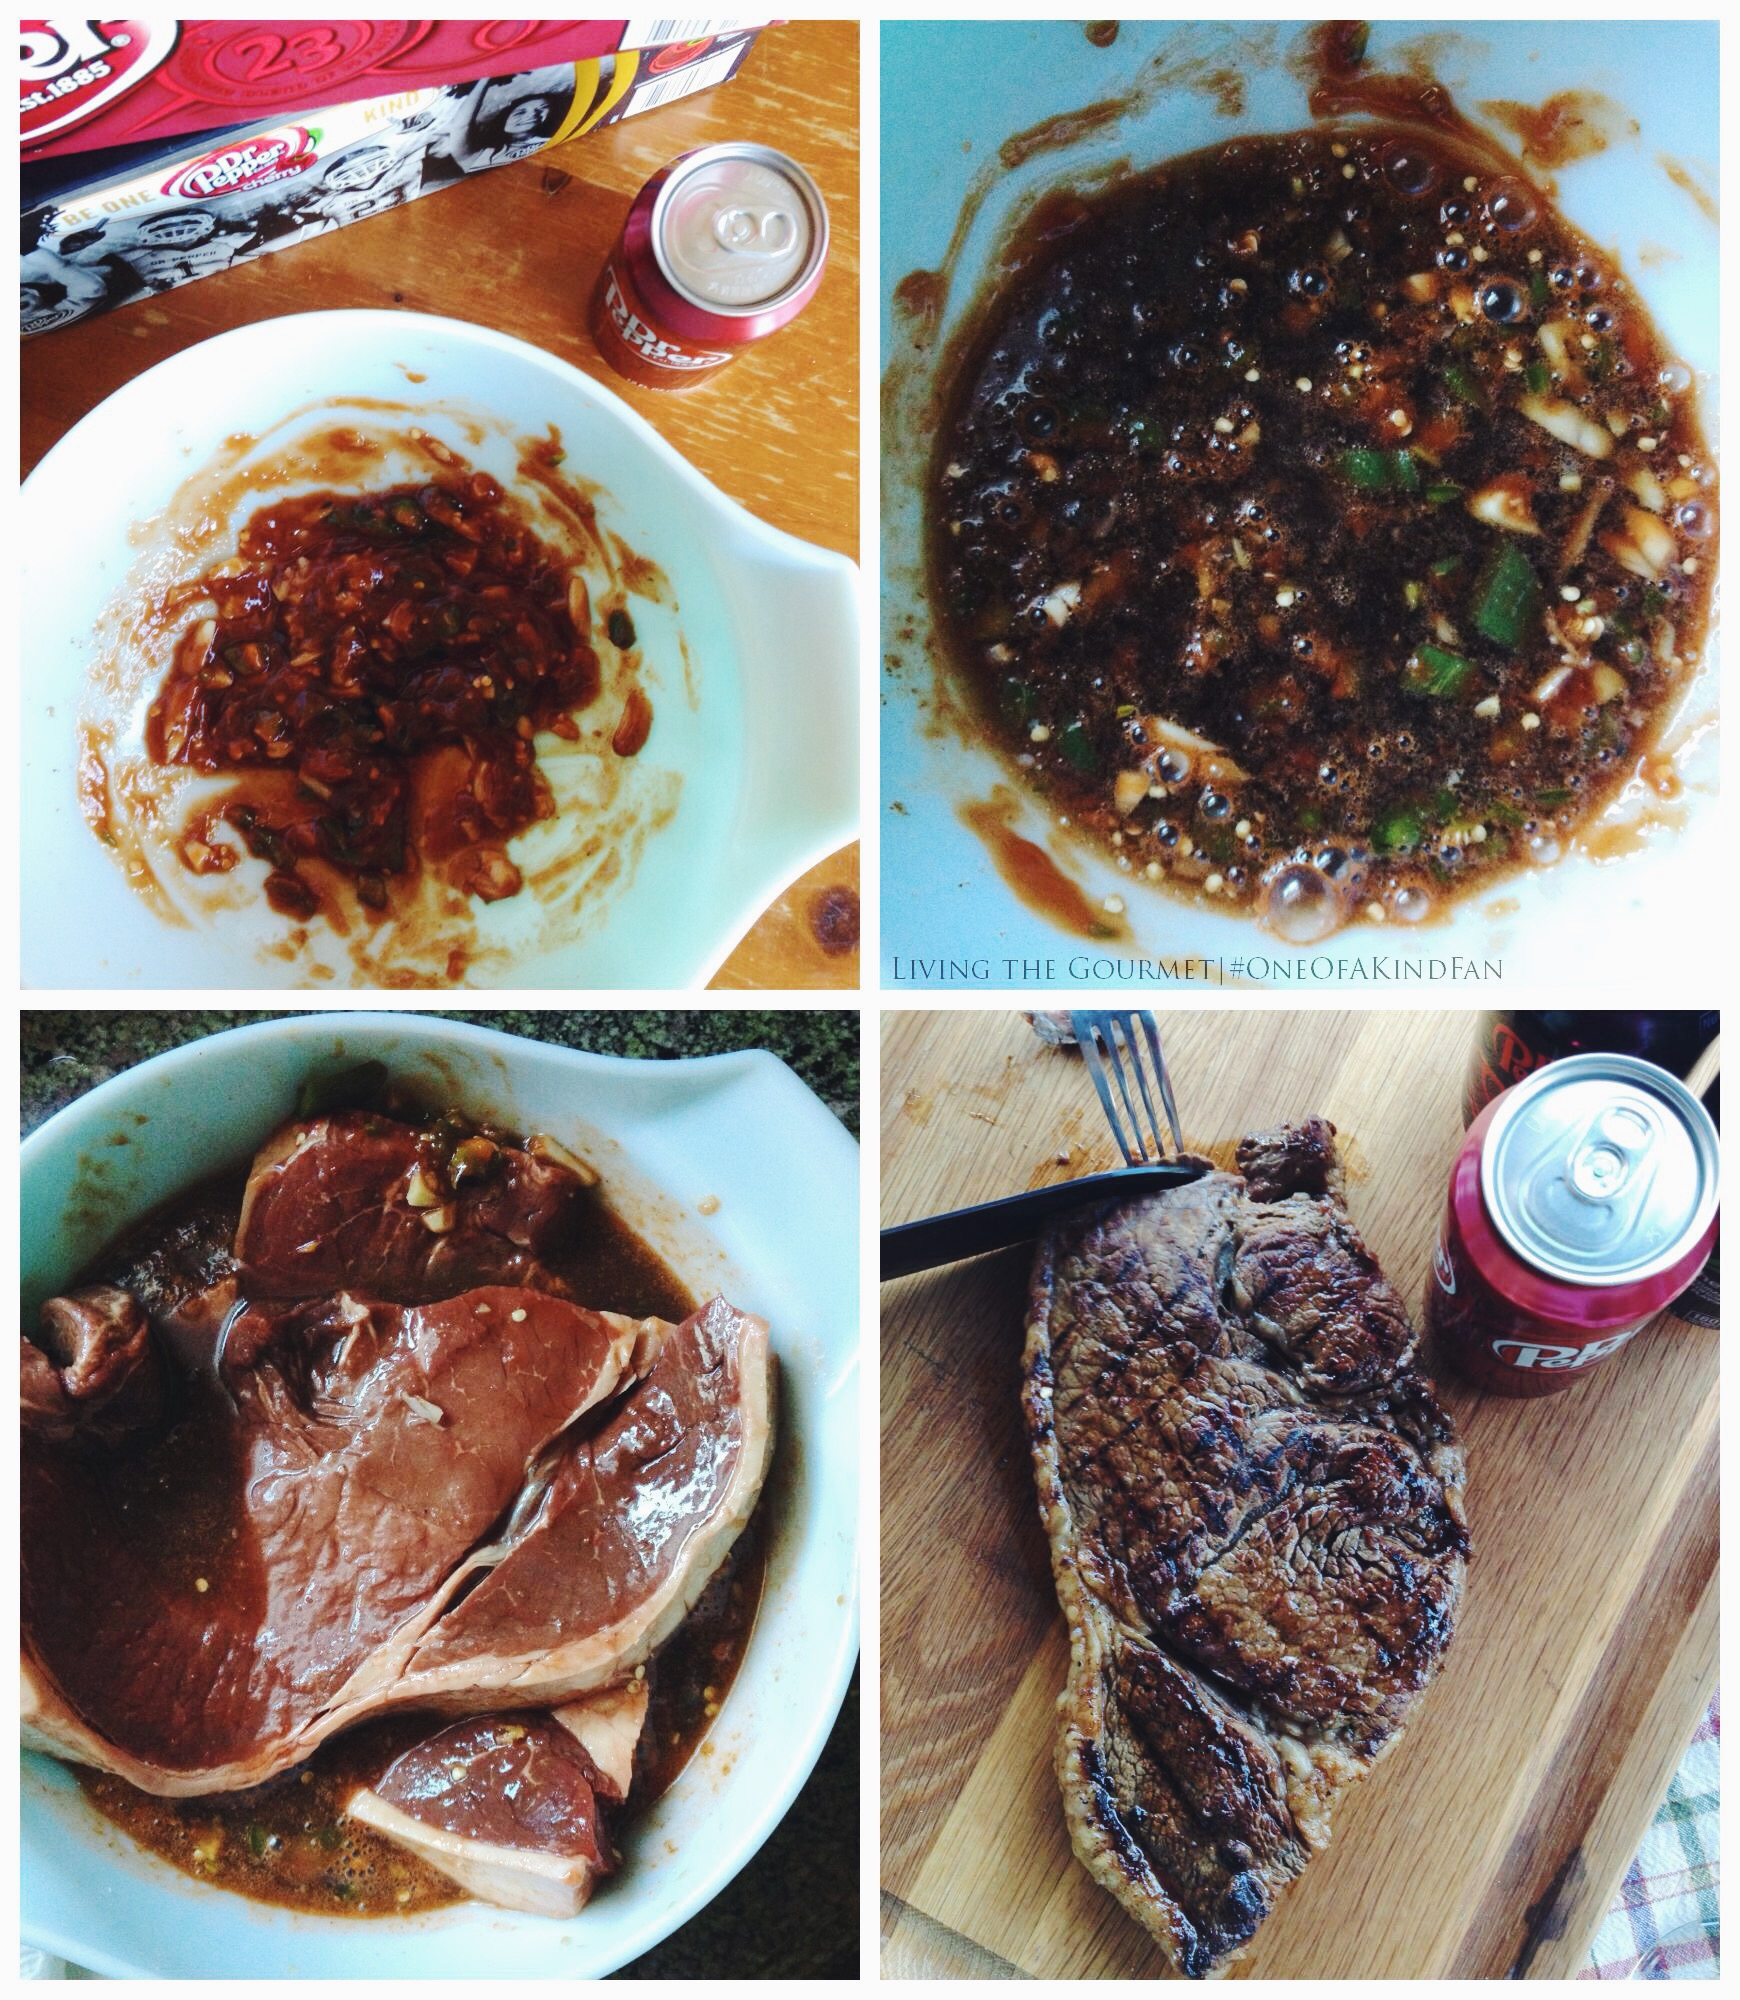 Living the Gourmet: Dr Pepper Sweet and Spicy Marinated Steaks | #OneOfAKindFan AD